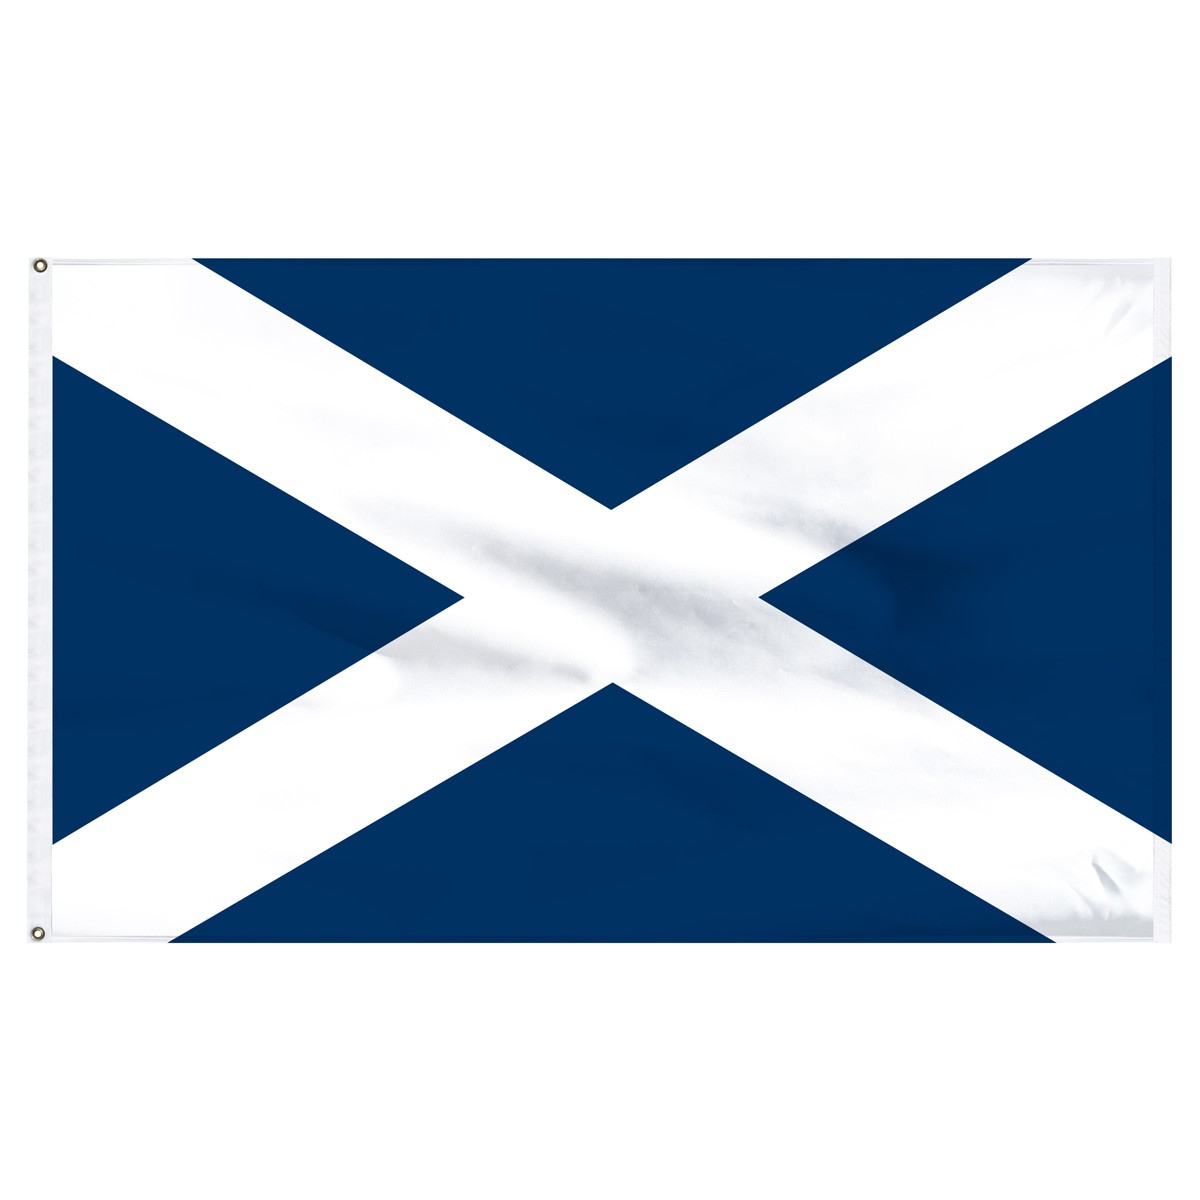 Secrets Picture Of The Scotland Flag Icon Circle Low Polygon Royalty - Free Printable Scottish Flag